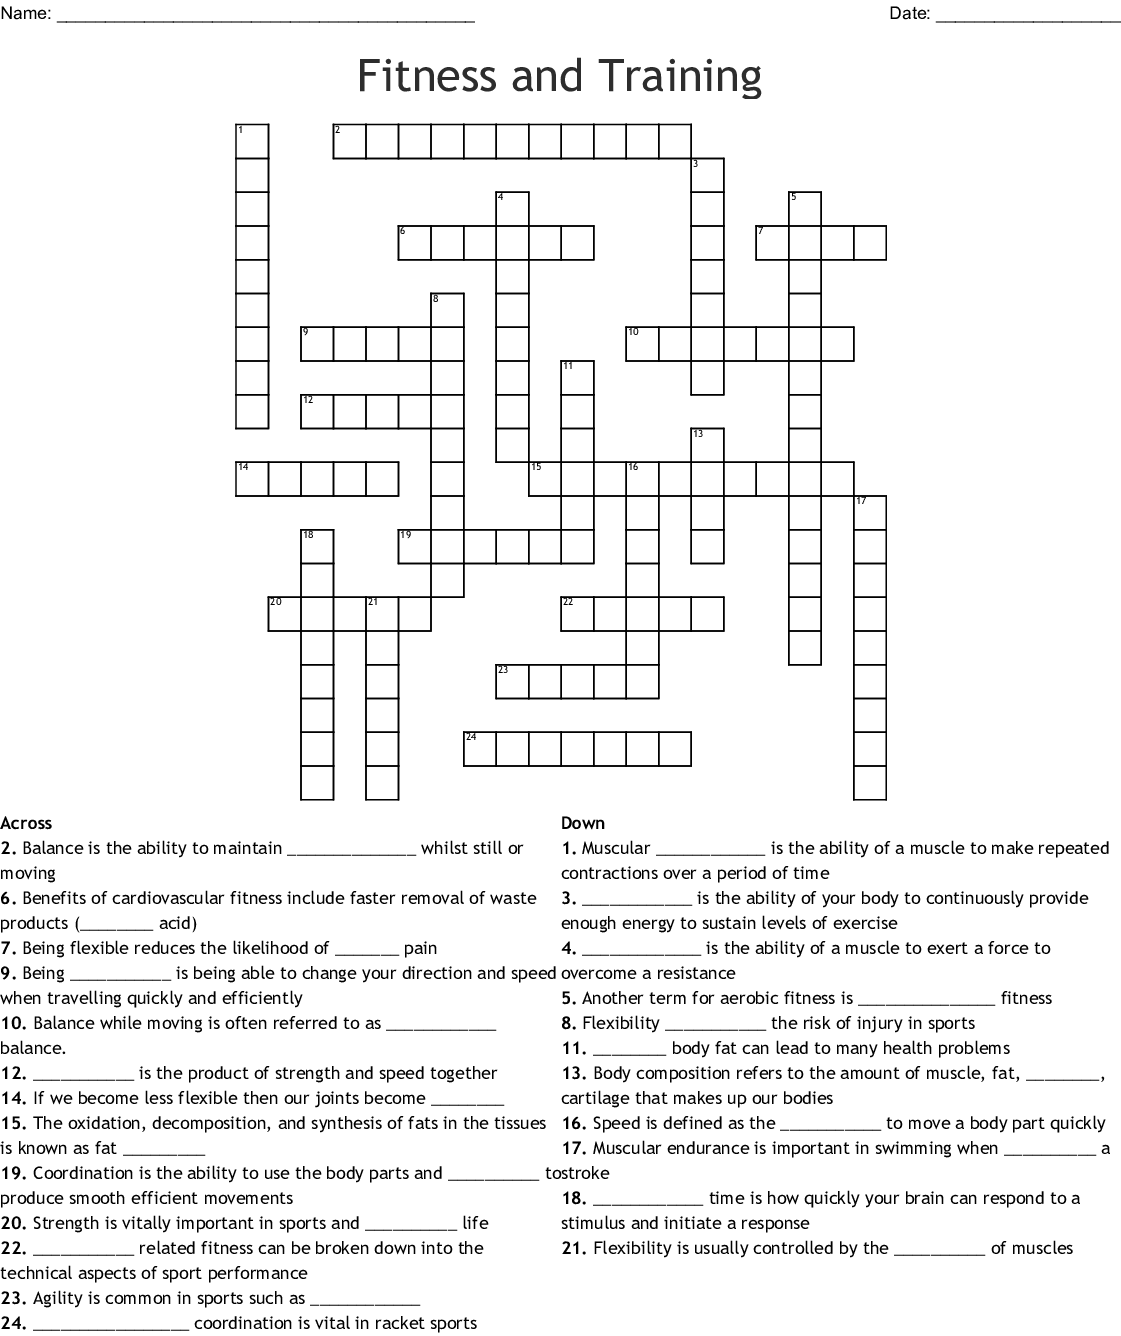 Benefits Of Exercise Crossword